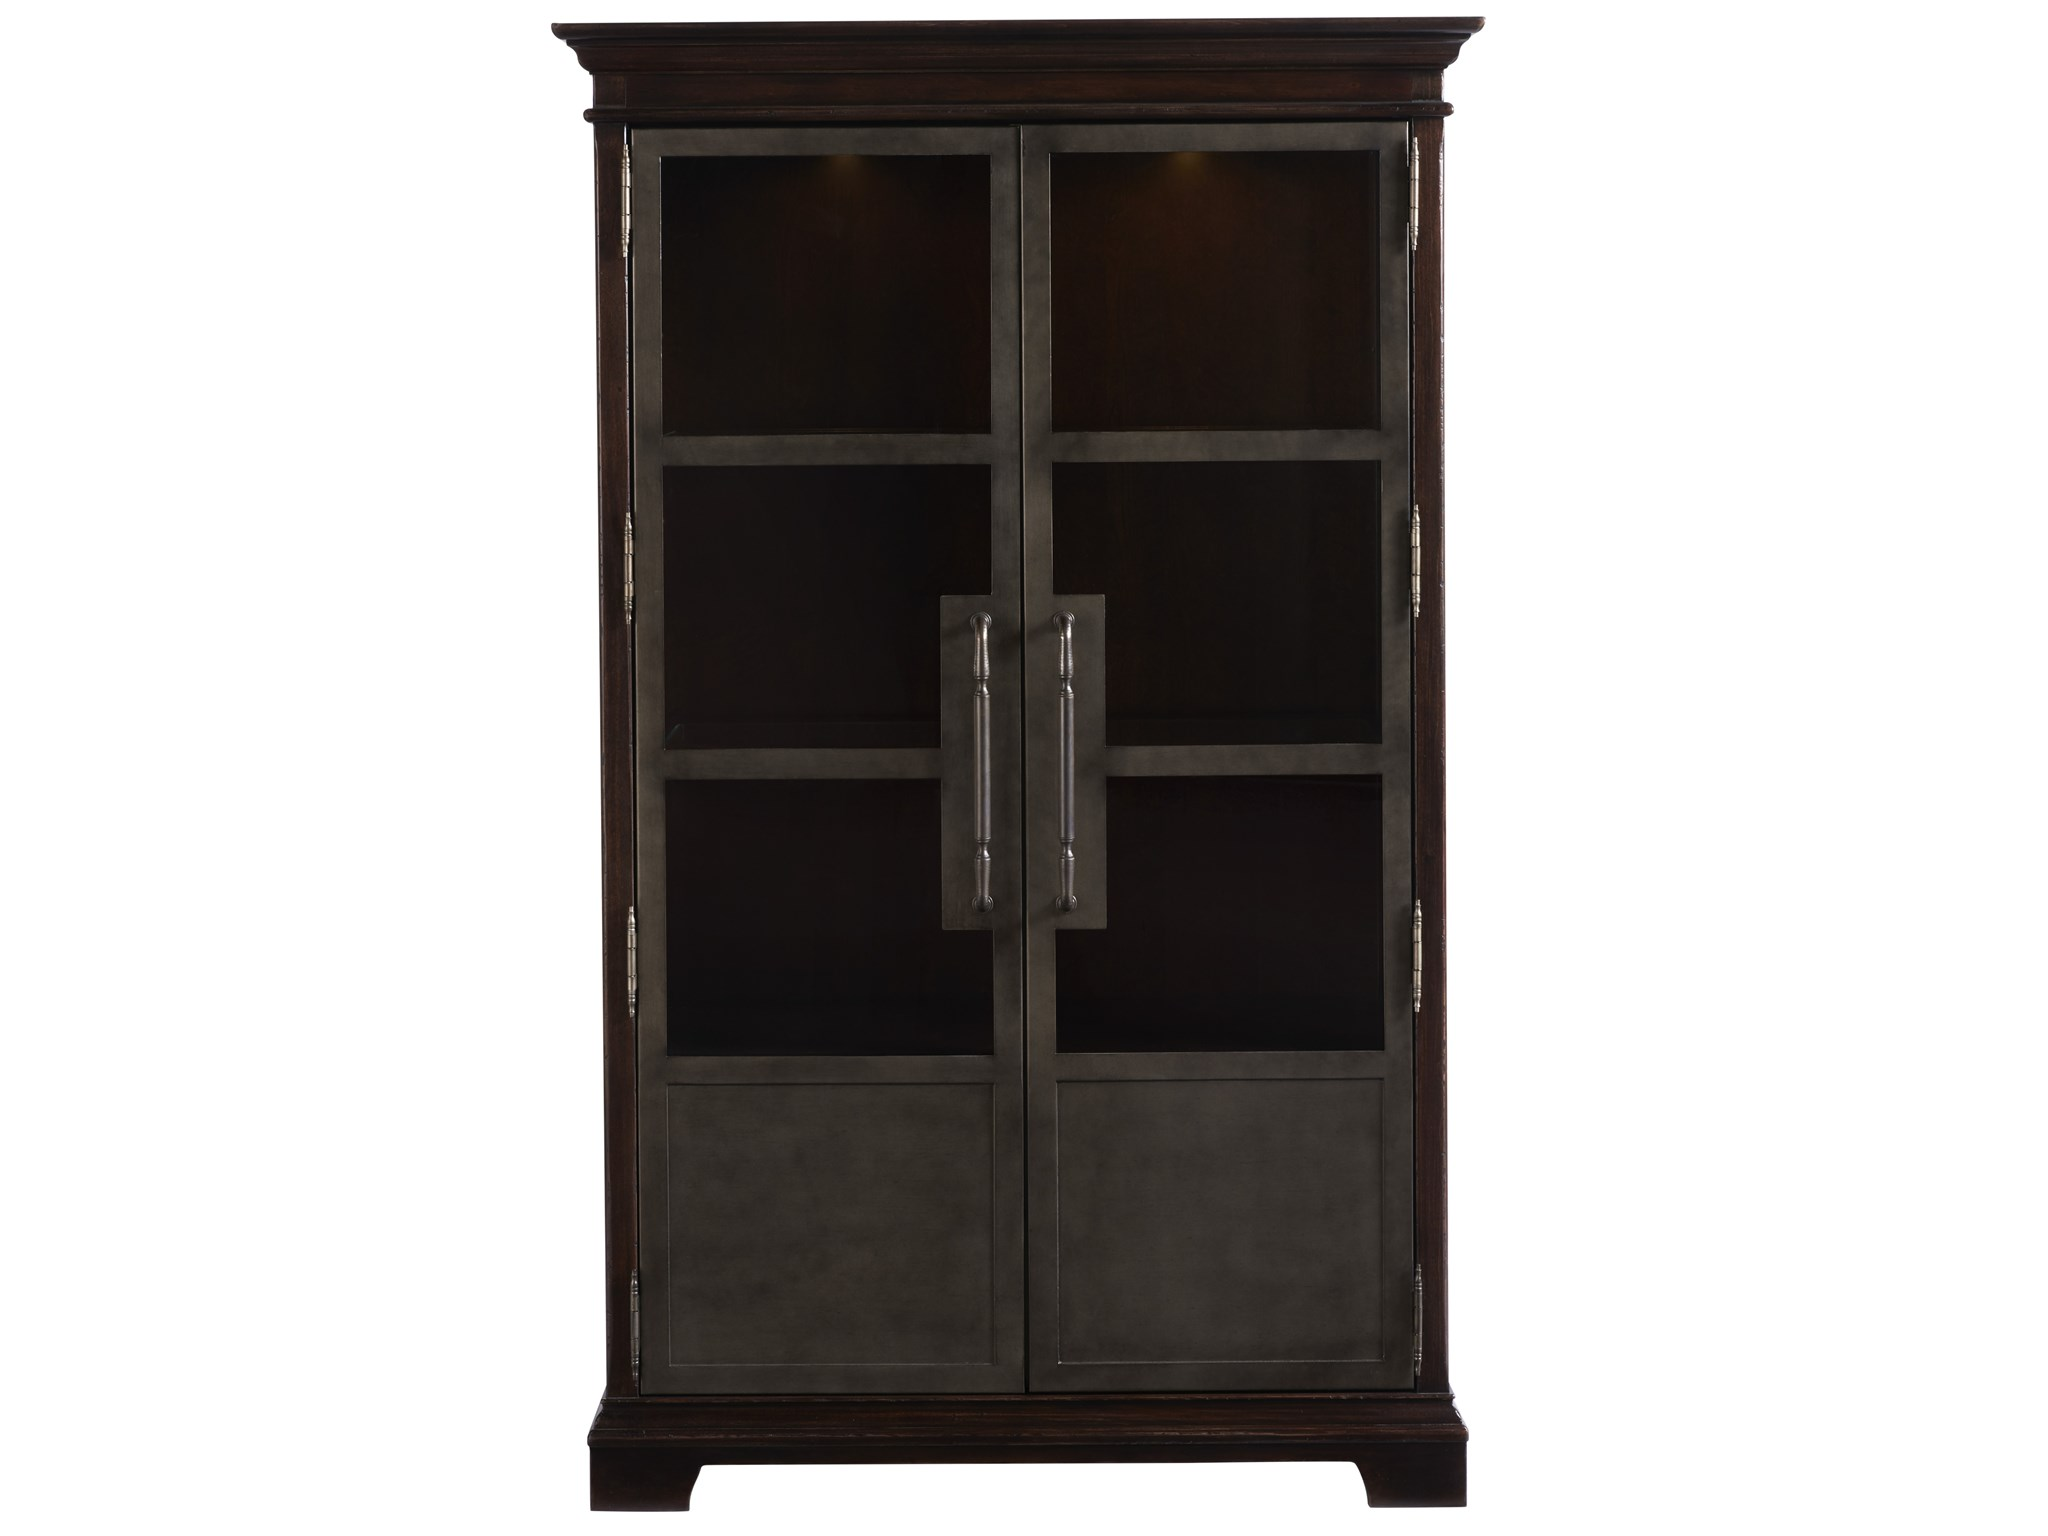 Traditions Park Hill Stanton Display Cabinet Universal